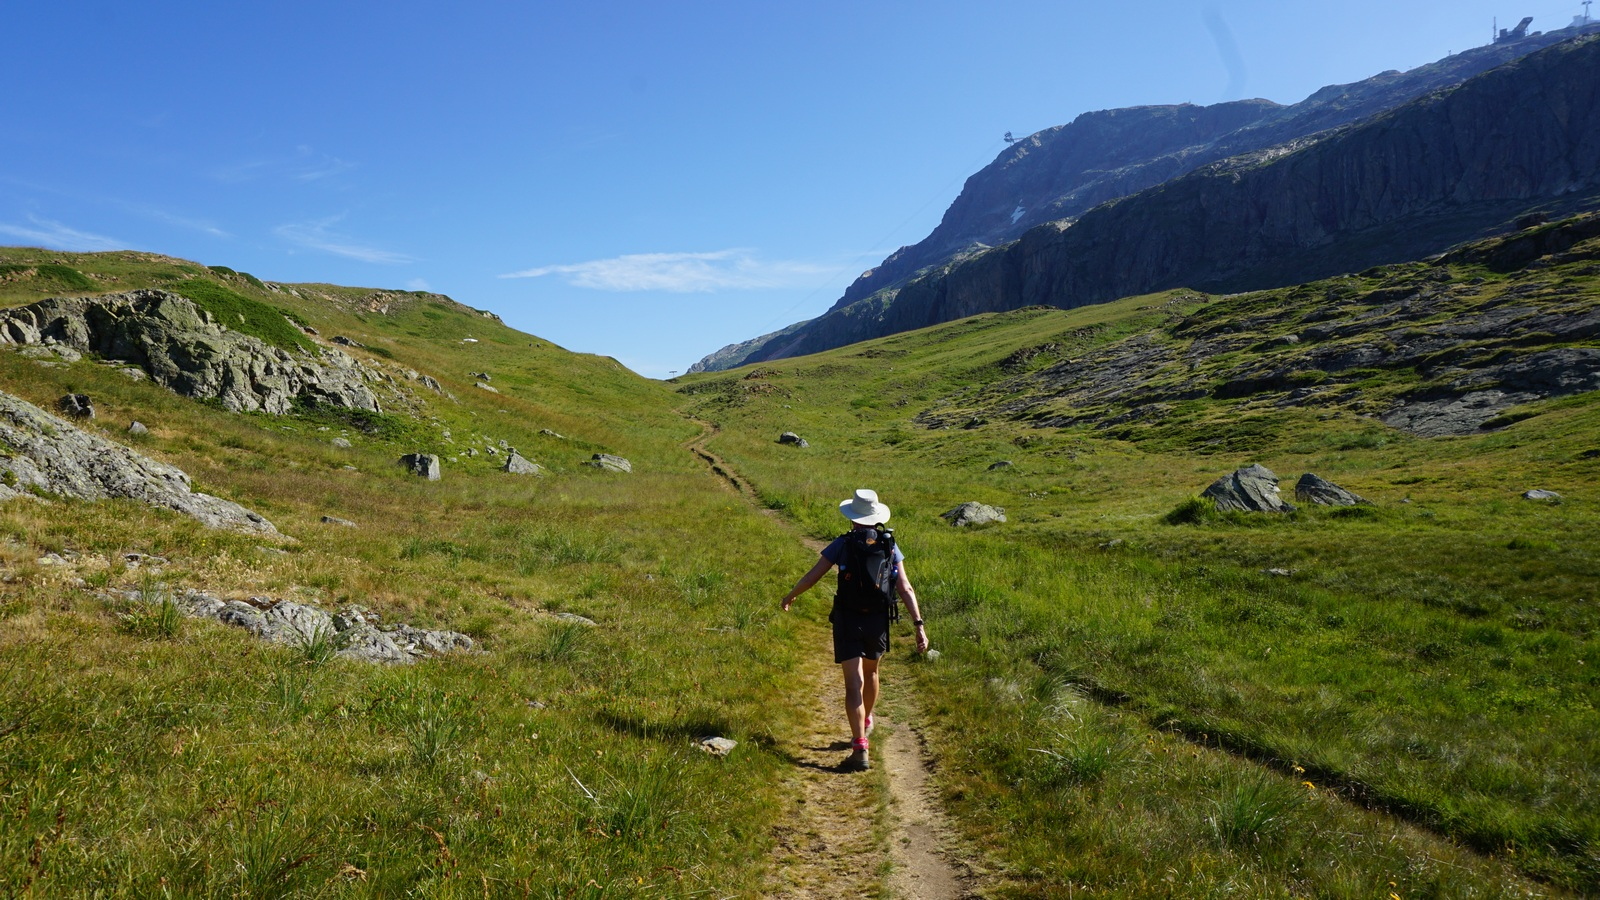 Following GR549 trail from Alpe d'Huez